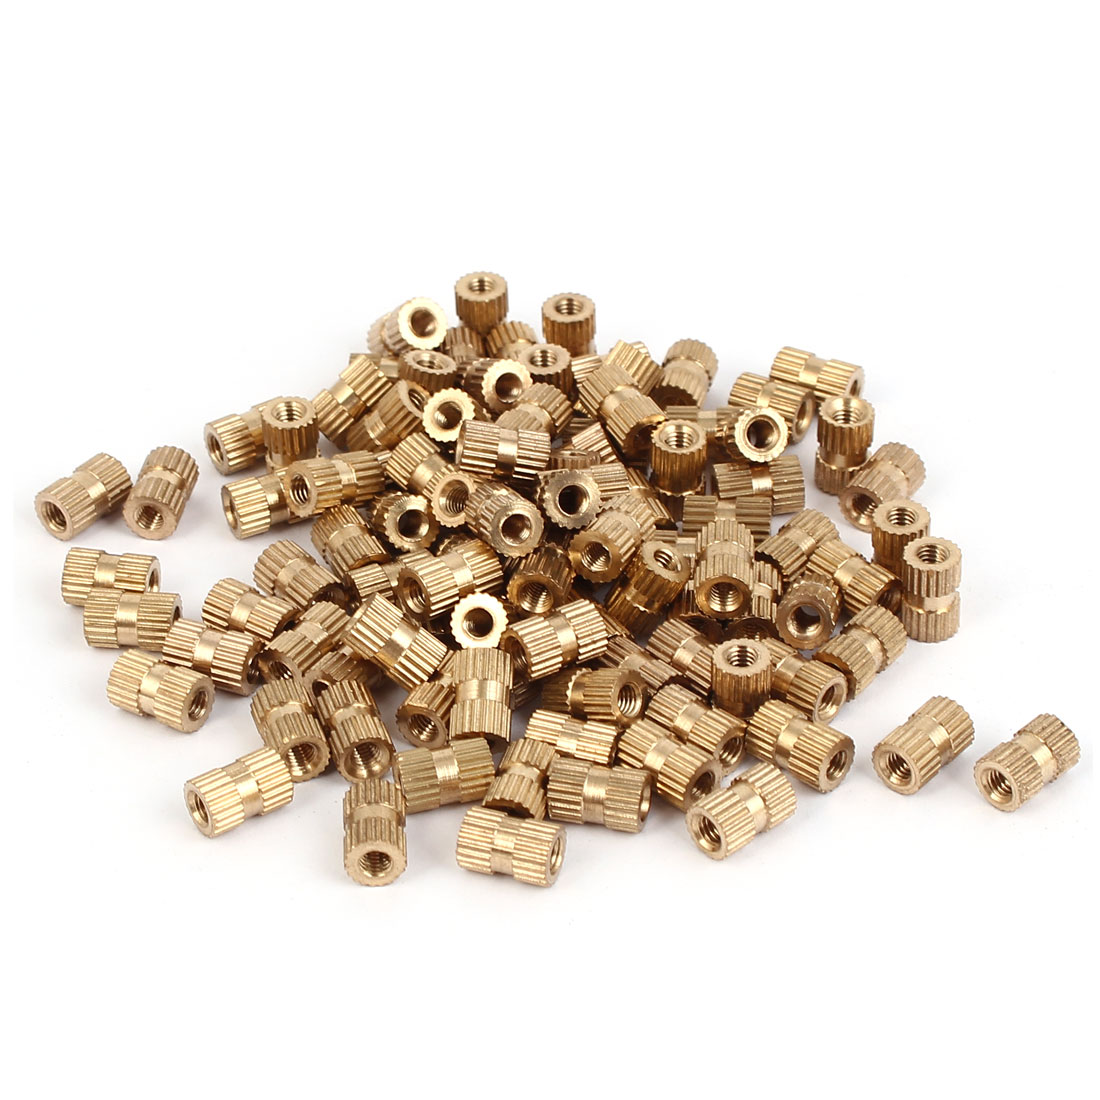 M3 x 8mm Brass Cylinder Injection Molding Knurled Insert Embedded Nuts 100PCS